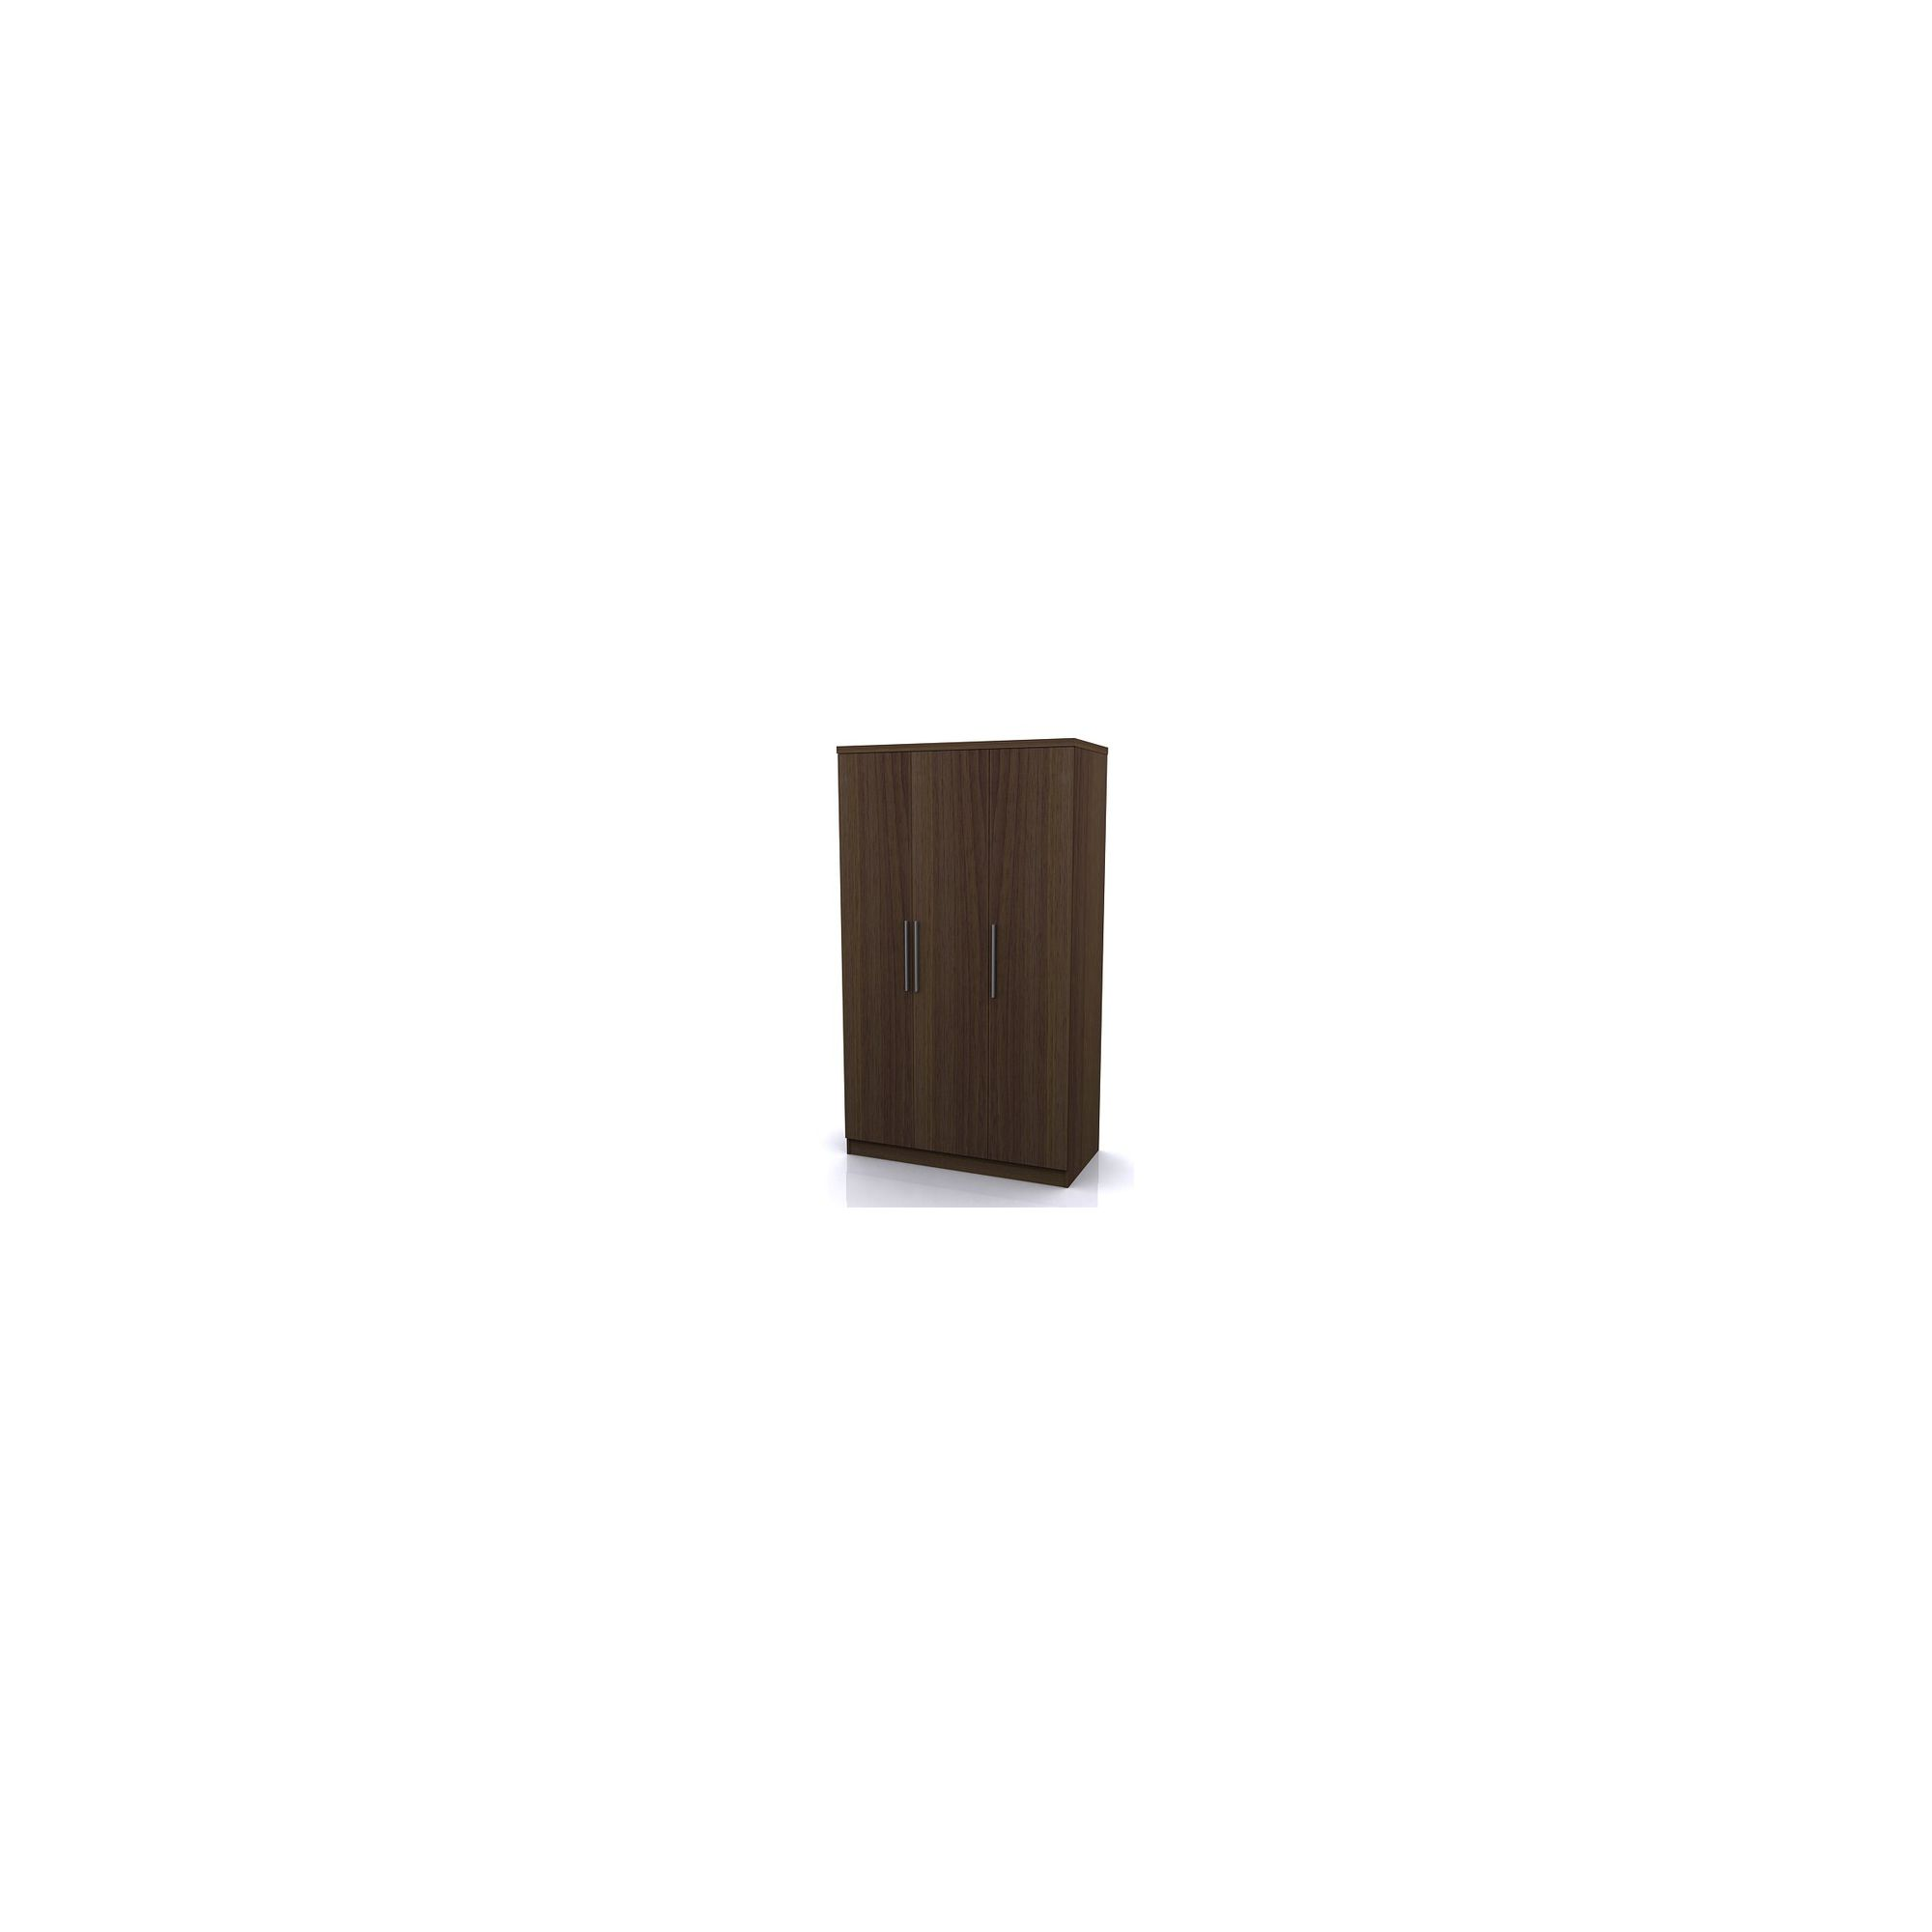 Altruna Manhattan Three Door Robe - Walnut at Tesco Direct